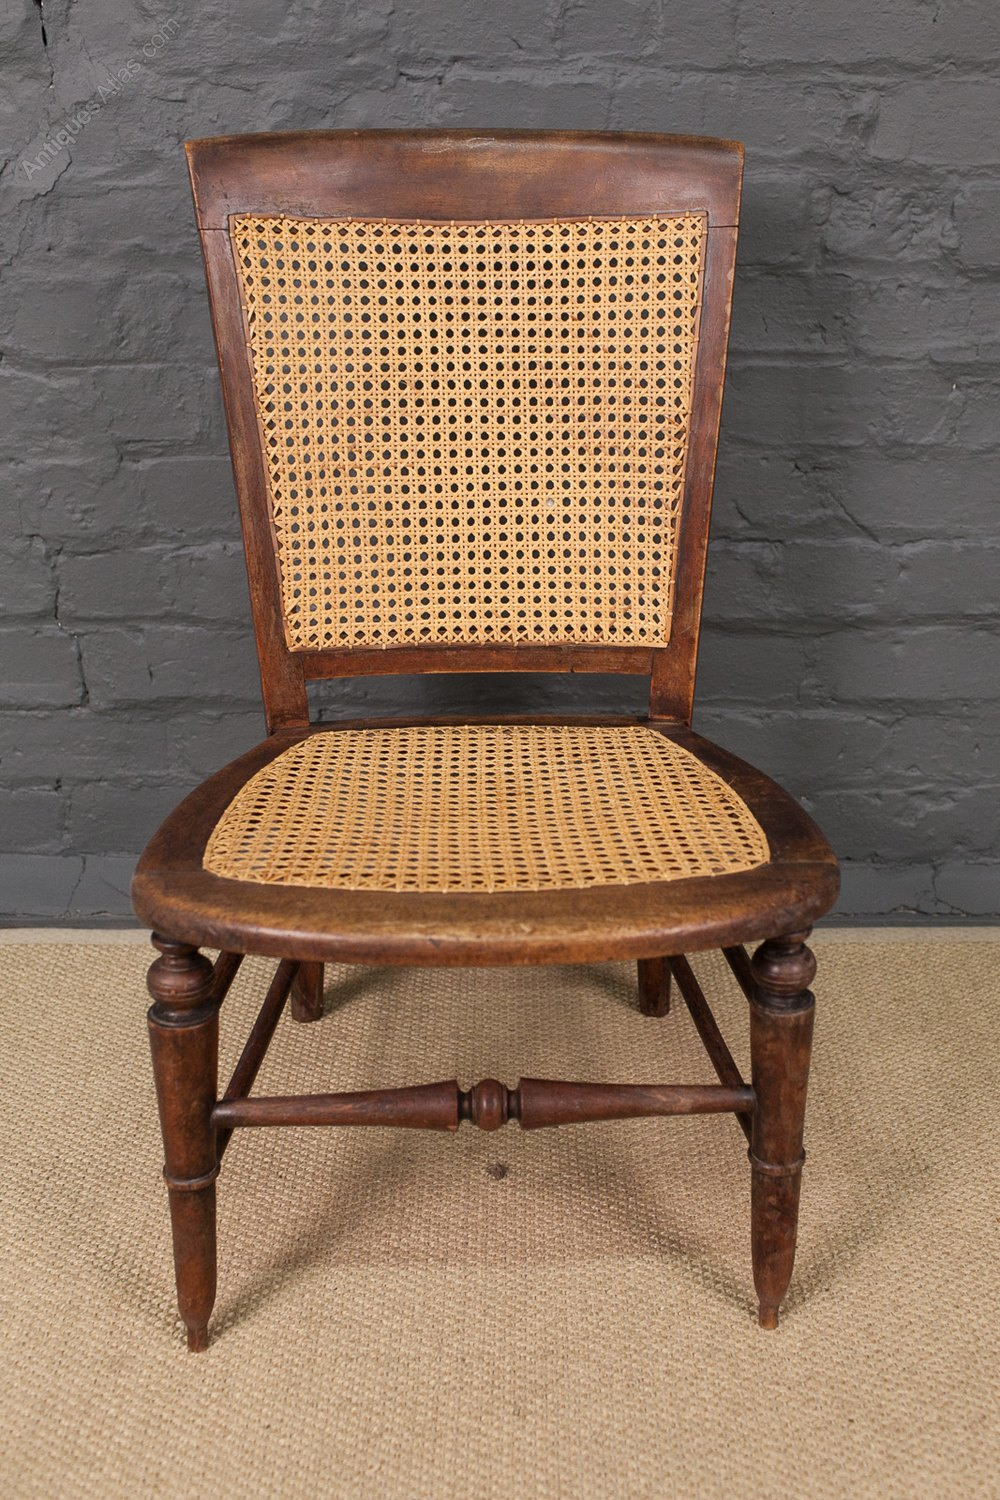 19th century cane back chair